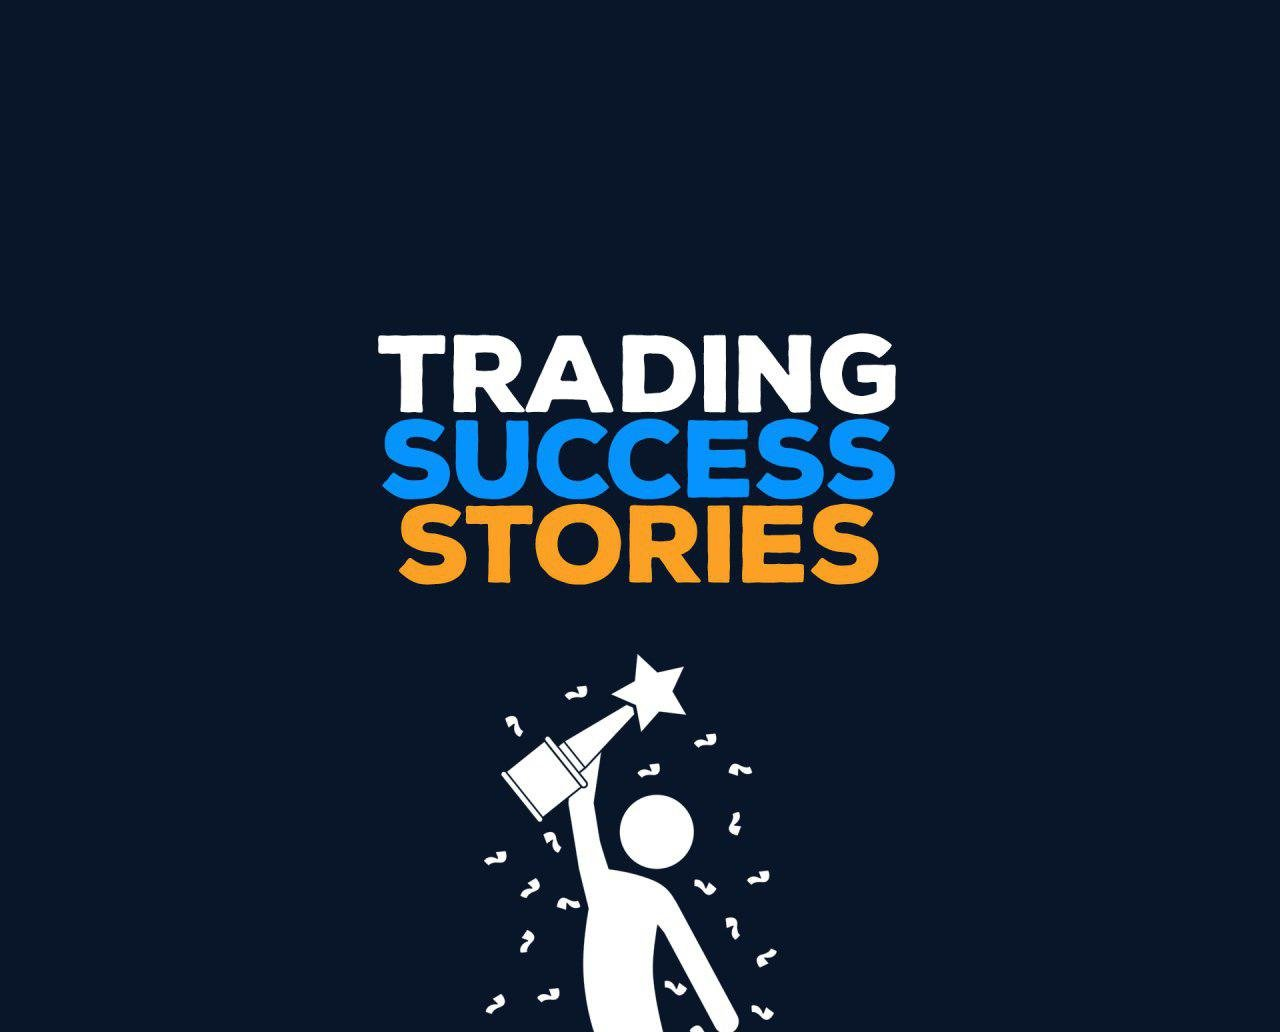 TRADING SUCCESS STORIES